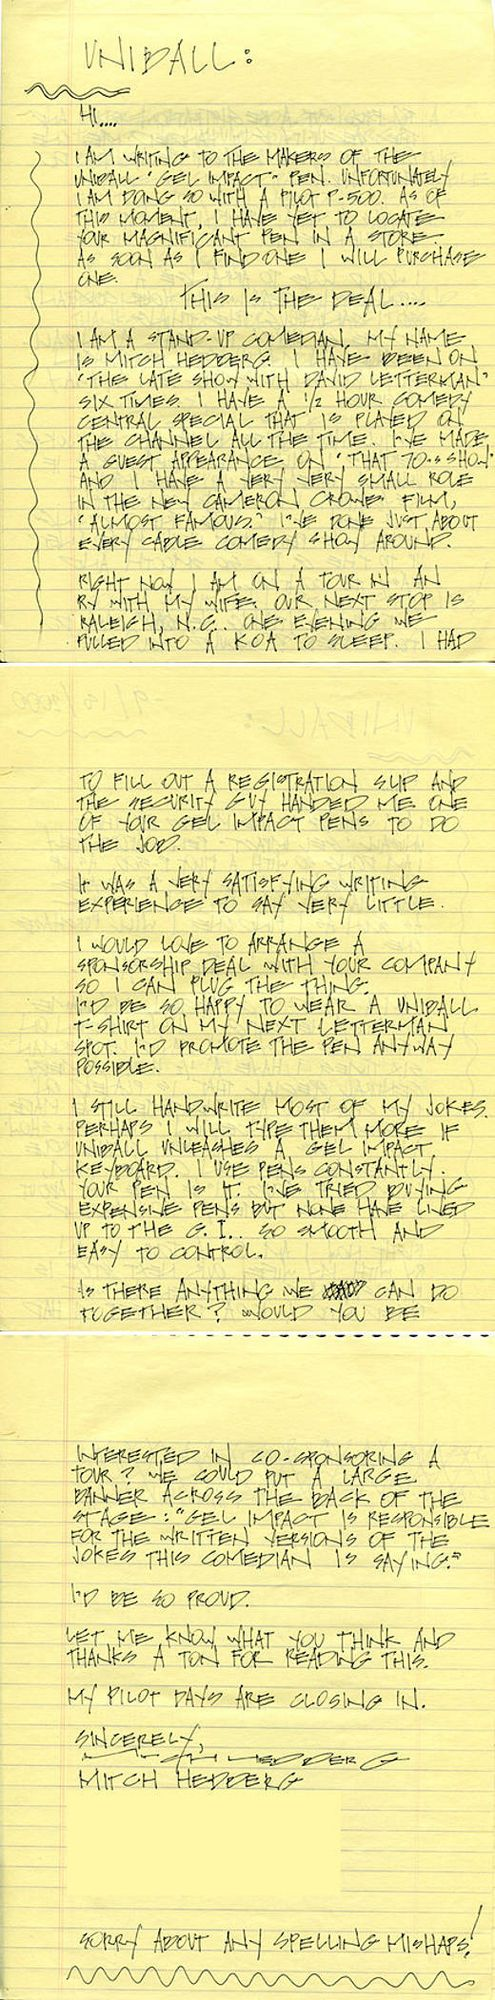 Mitch Hedberg's Amazing Letter To The Uni-Ball Pen Company